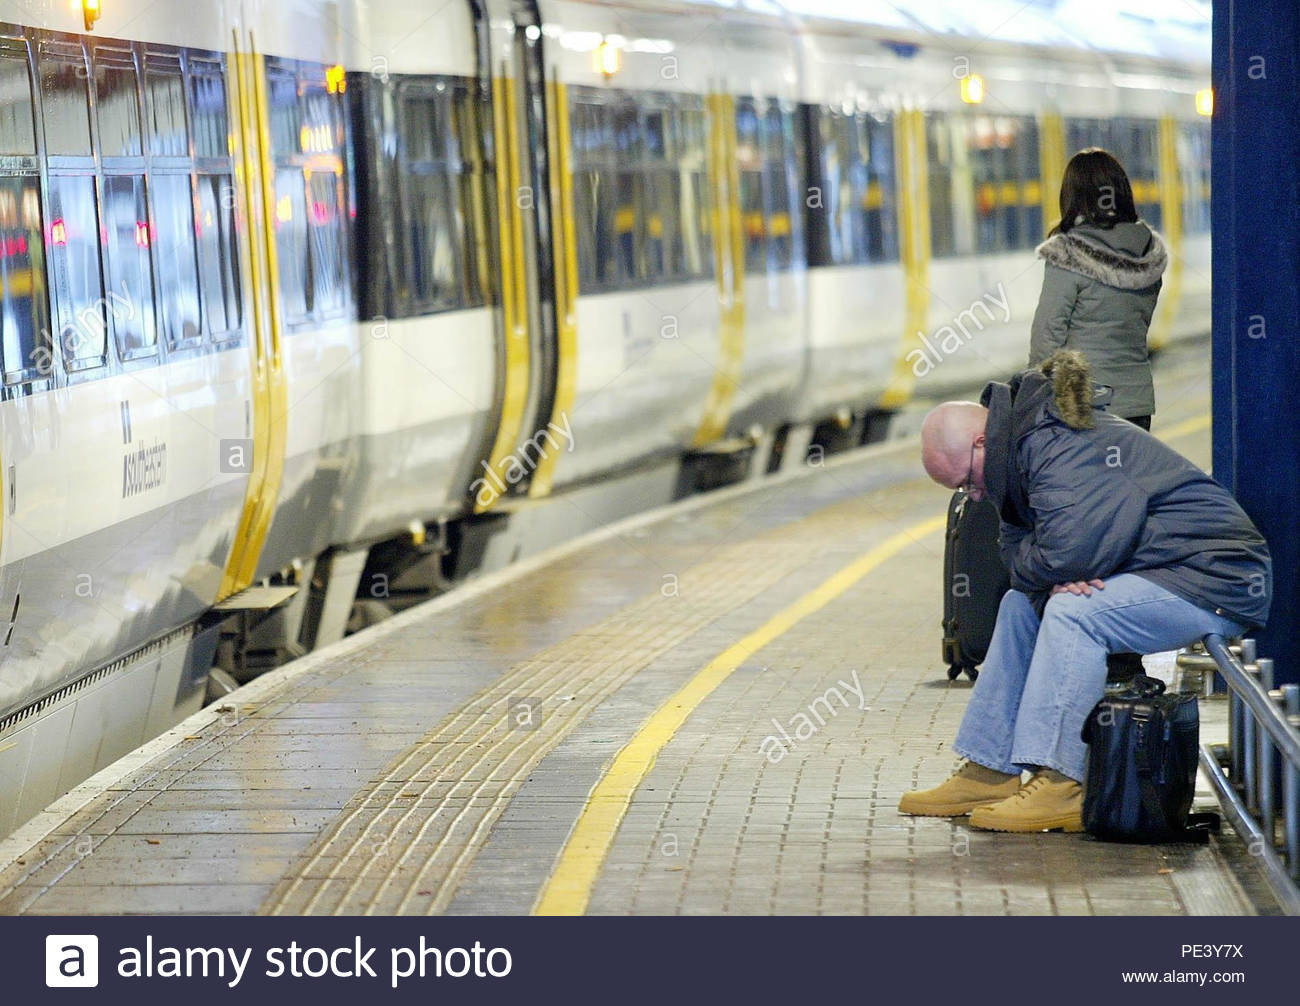 Embargoed to 0001 Monday August 13 File photo dated 29/12/05 of commuters waiting for trains during the rush hour. Passenger satisfaction with rail punctuality and reliability has fallen over the past decade, figures show. - Stock Image